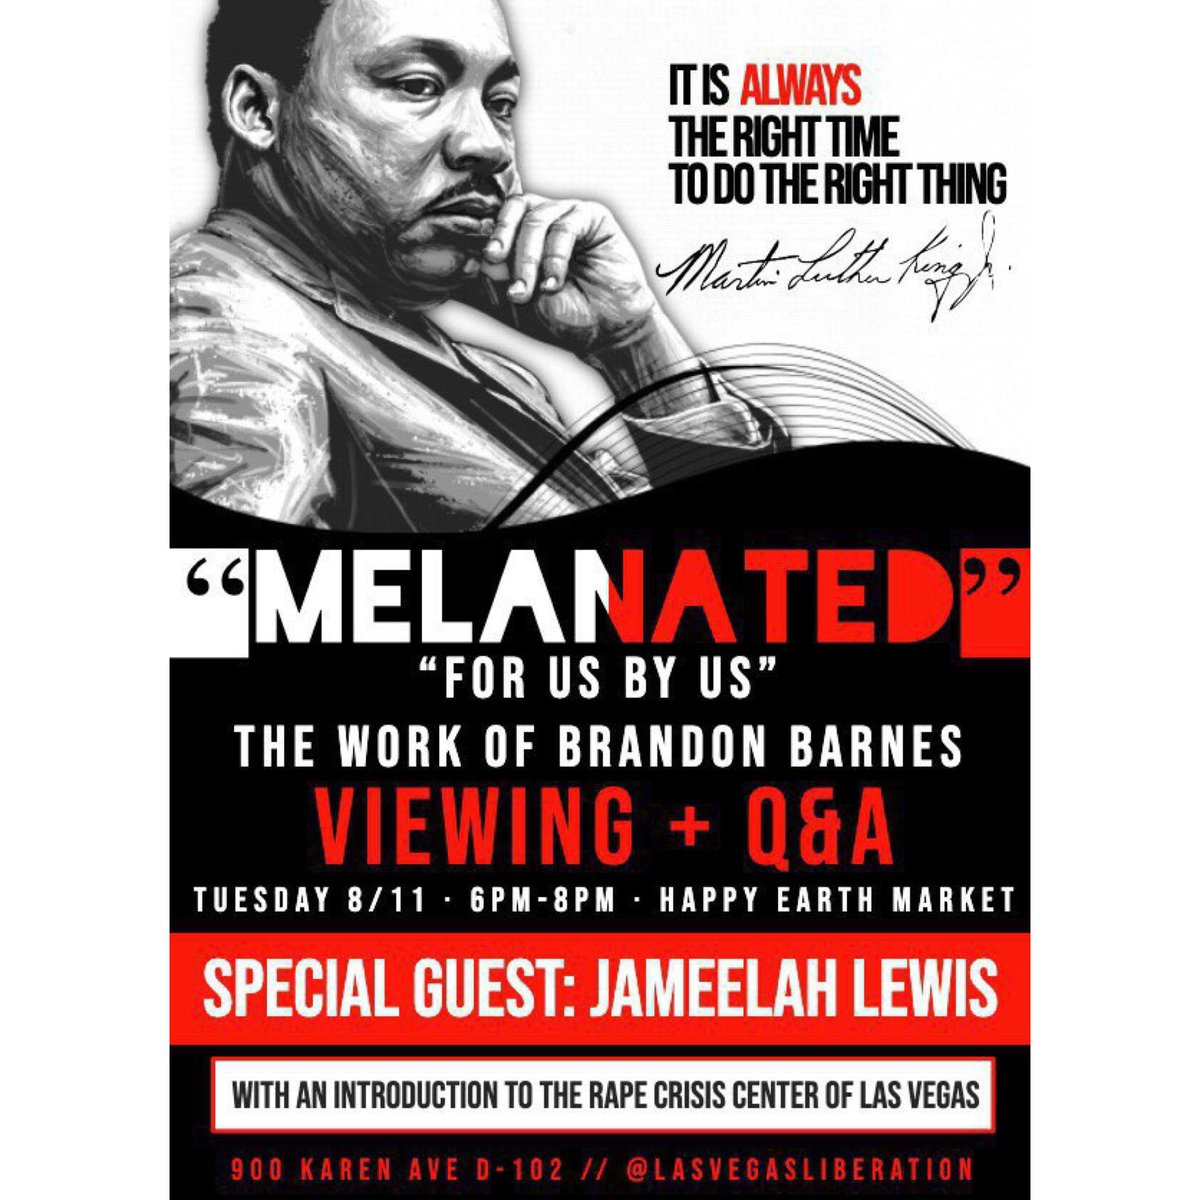 """Please join us tomorrow night from 6-8pm! We will be showing """"Melanated"""" by Brandon Barnes! We will be having a special guest Jameelah Lewis from the rape crisis center in Las Vegas! Hope to see you all there!"""